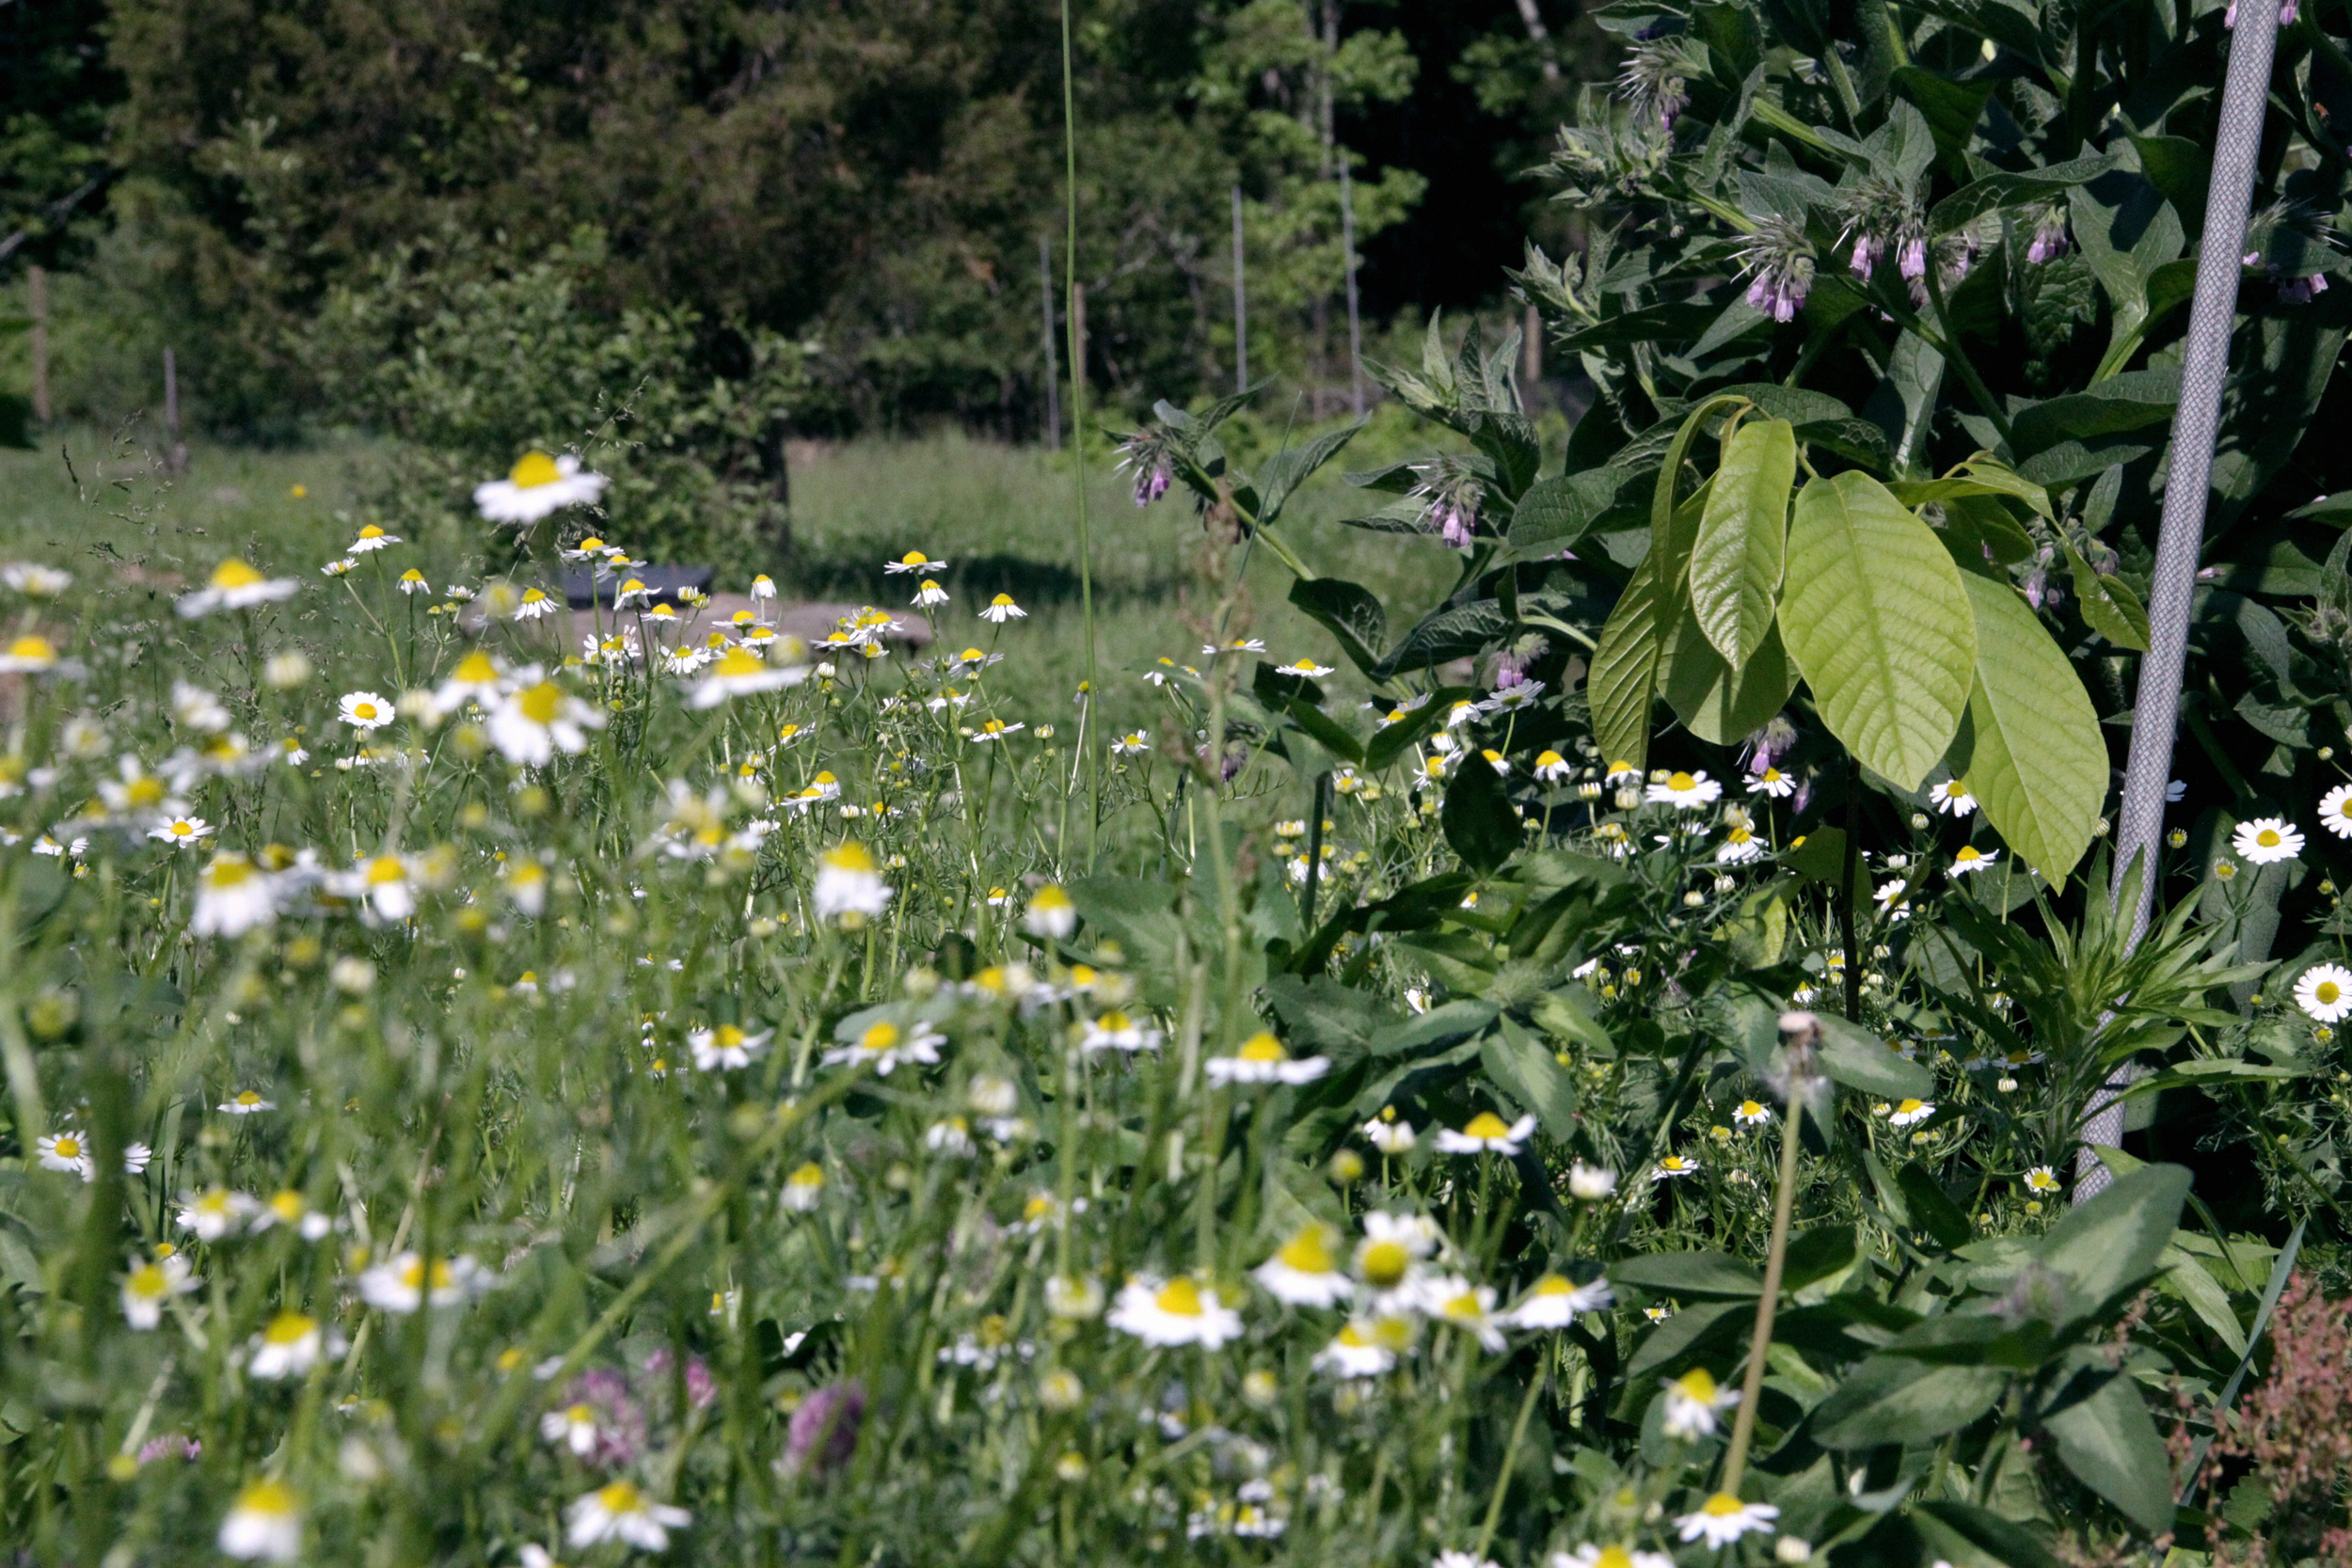 Chamomile, Red Clover, Pawpaw, Comfrey